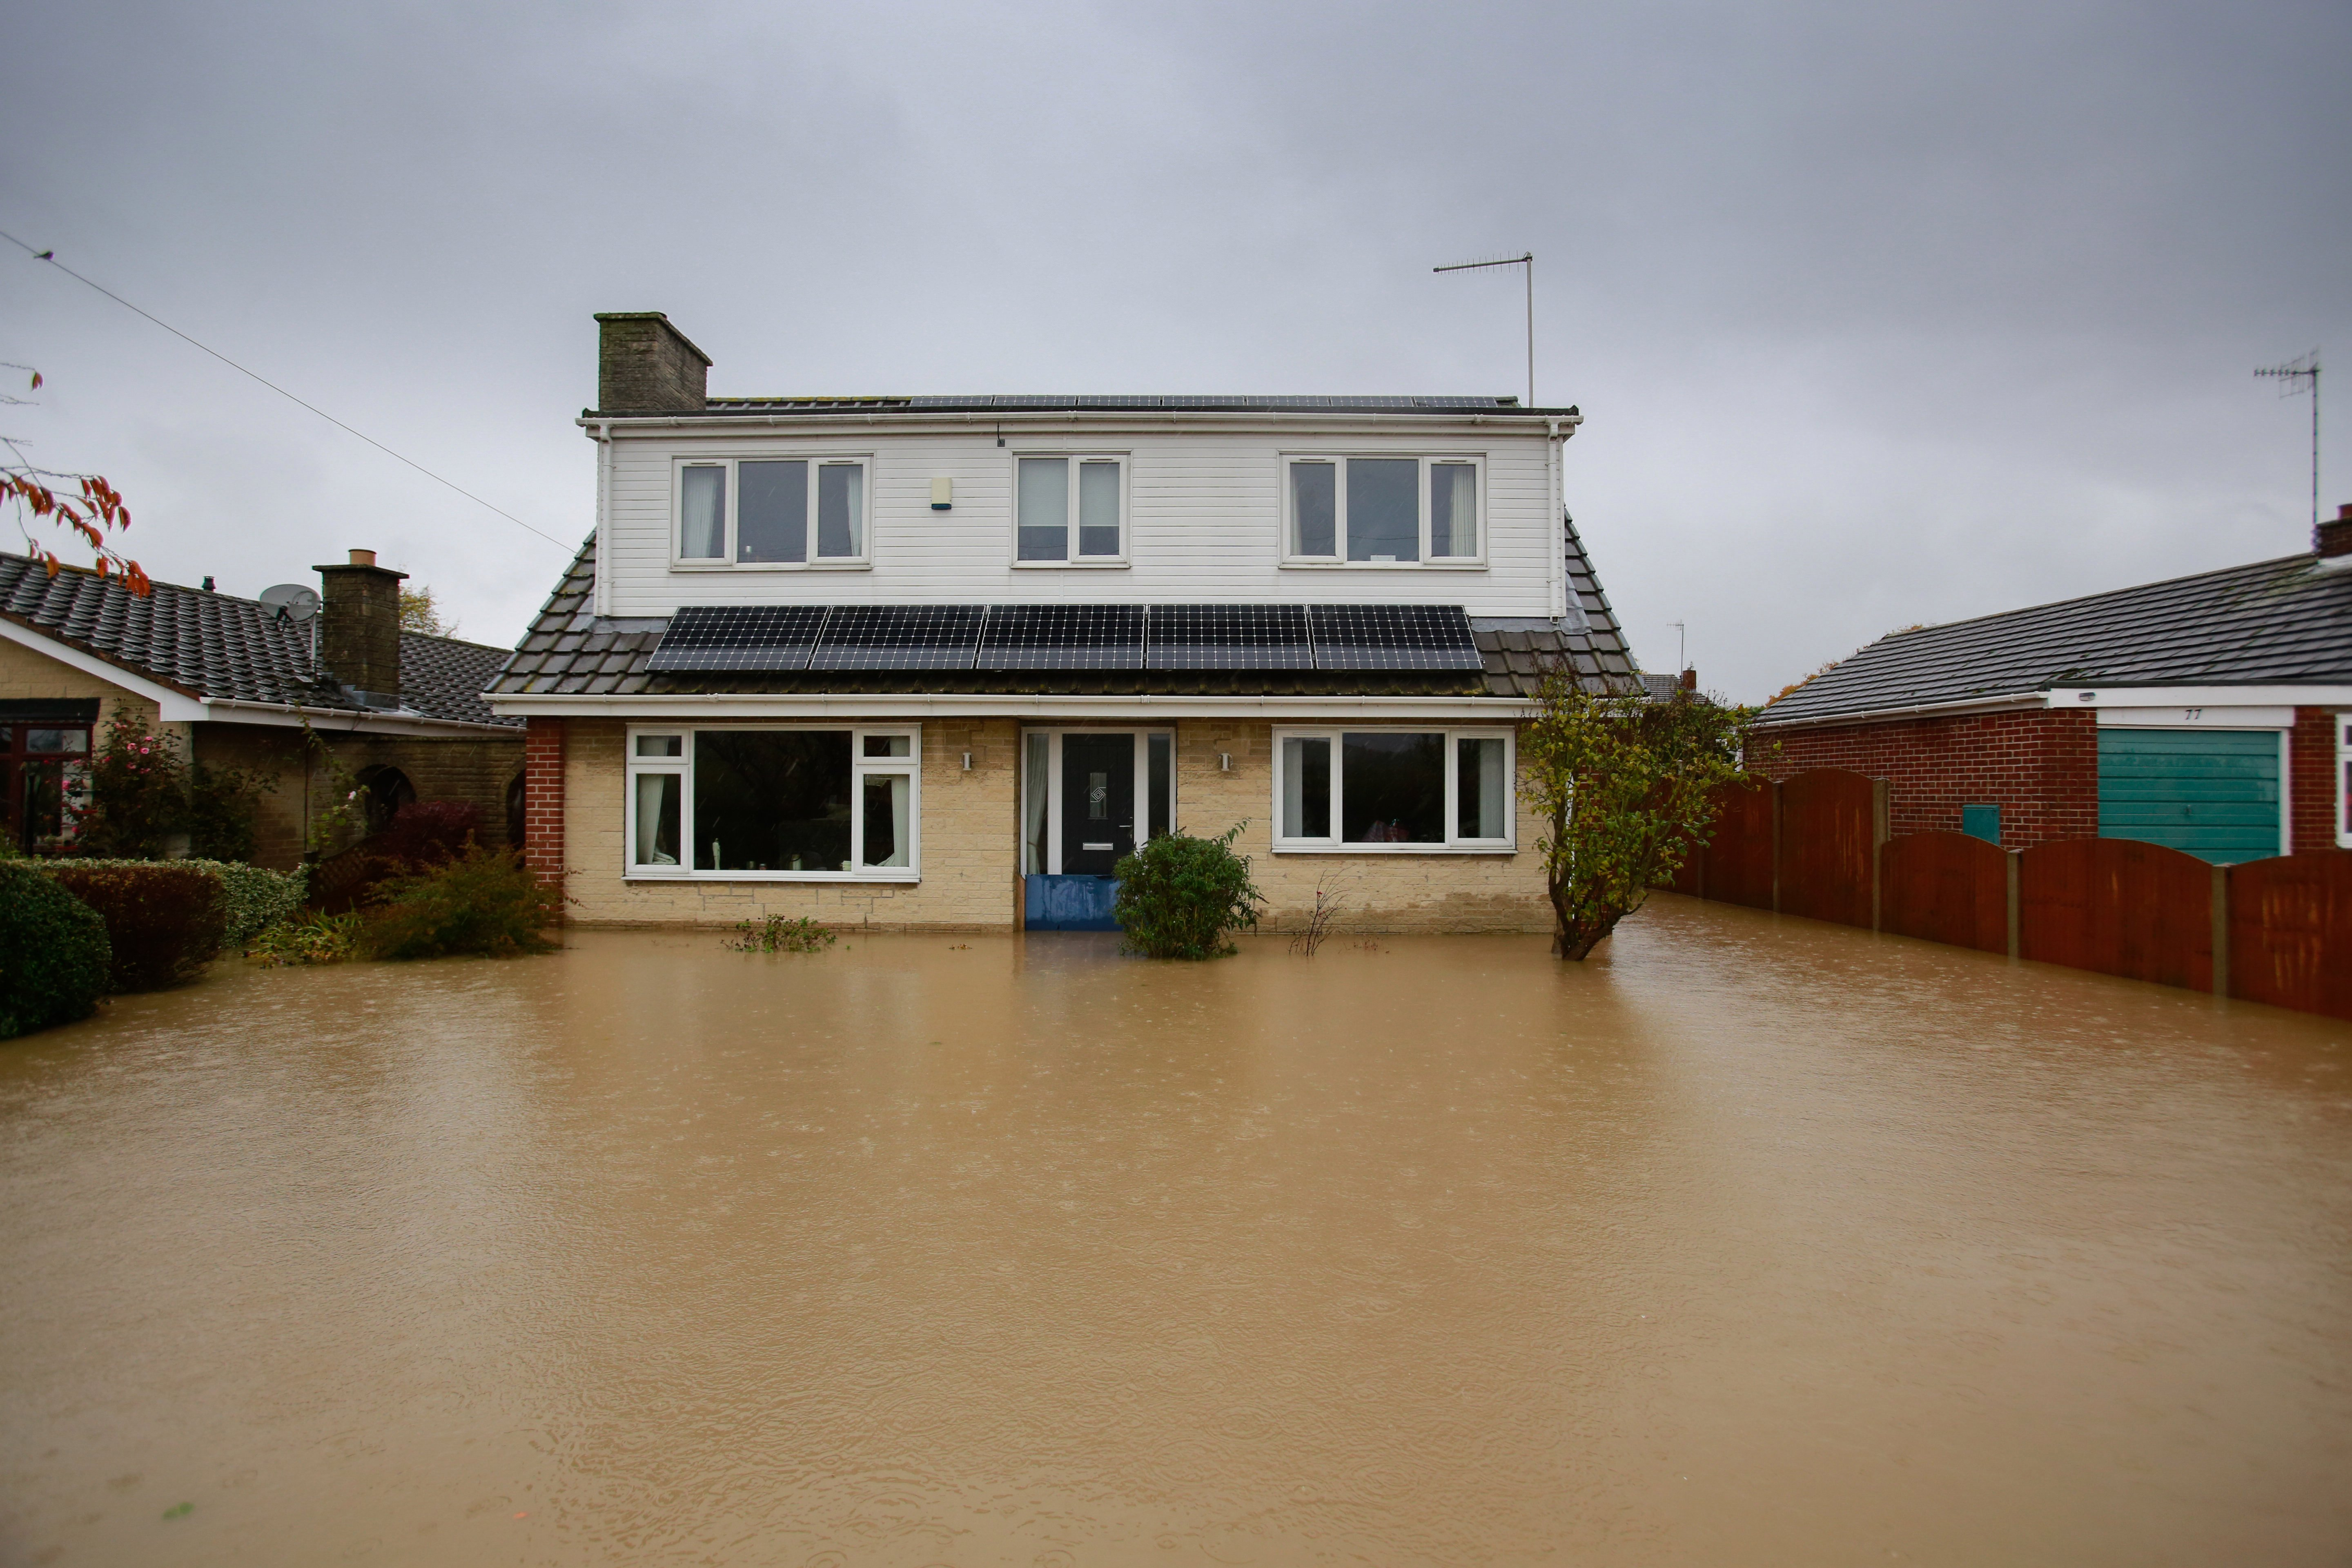 The garden of this home in Whiston became more like a lake after the flooding